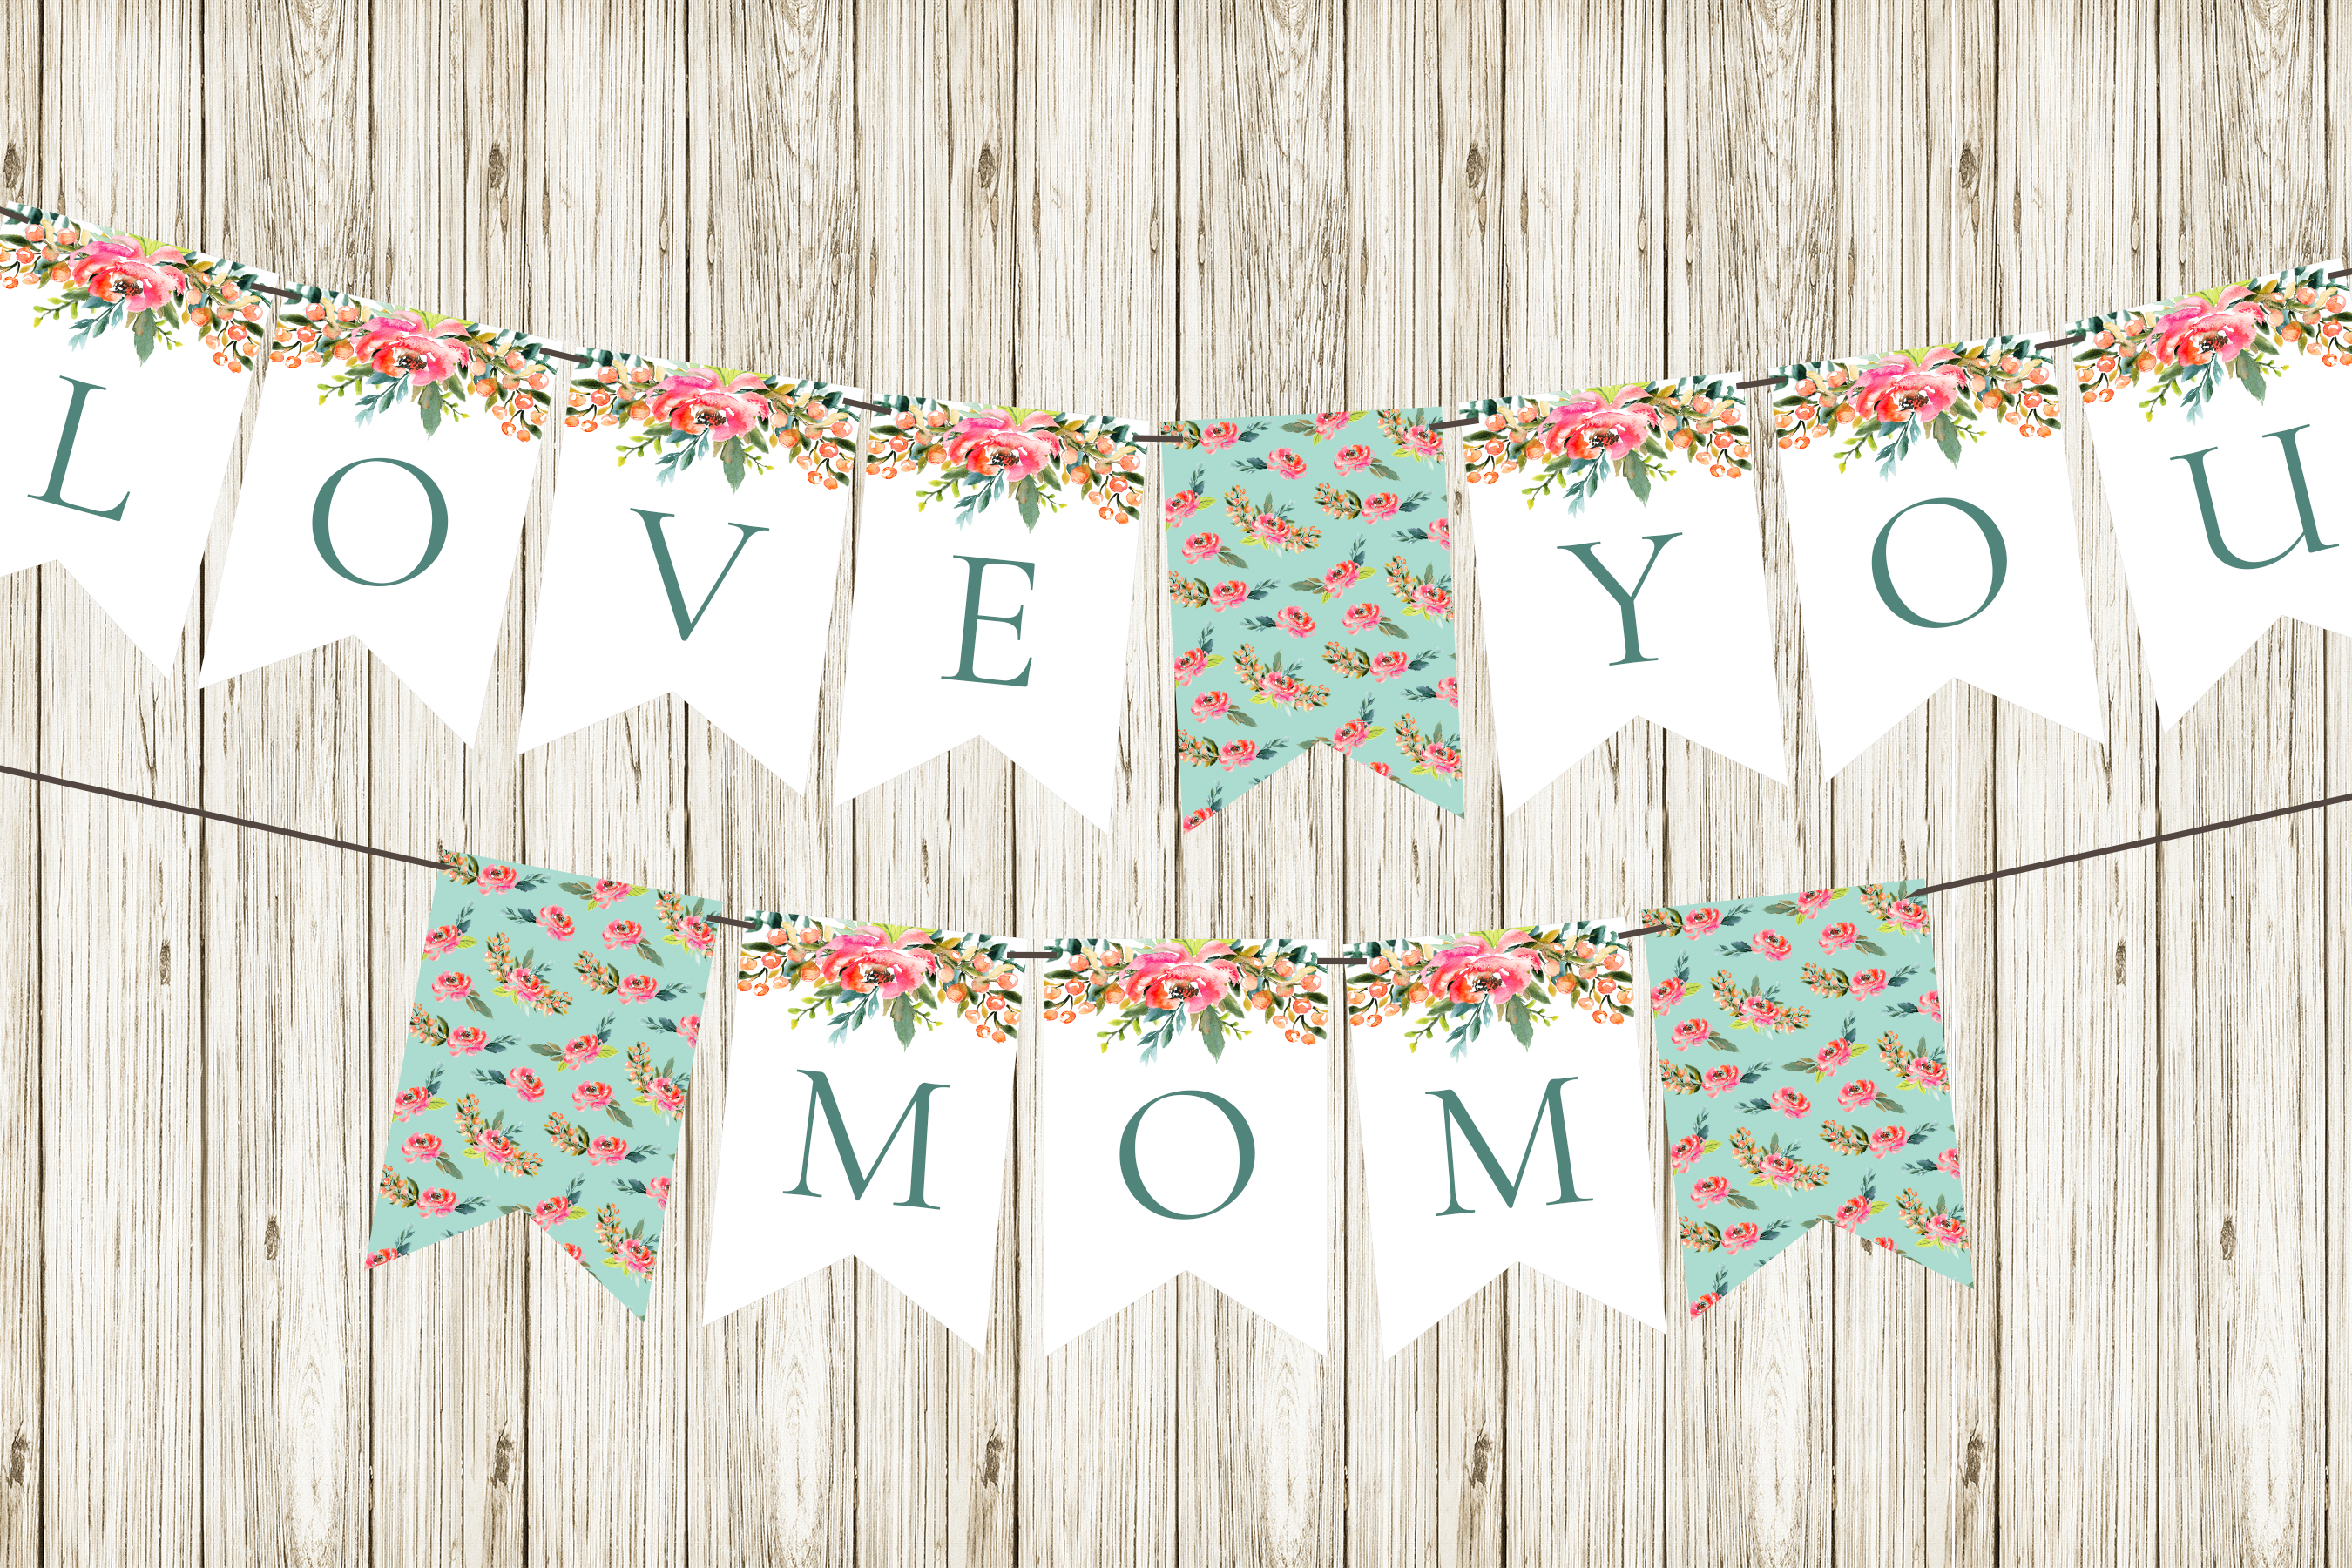 DIY Mother's Day Bunting:  Free Printable Mother's Day Decorations